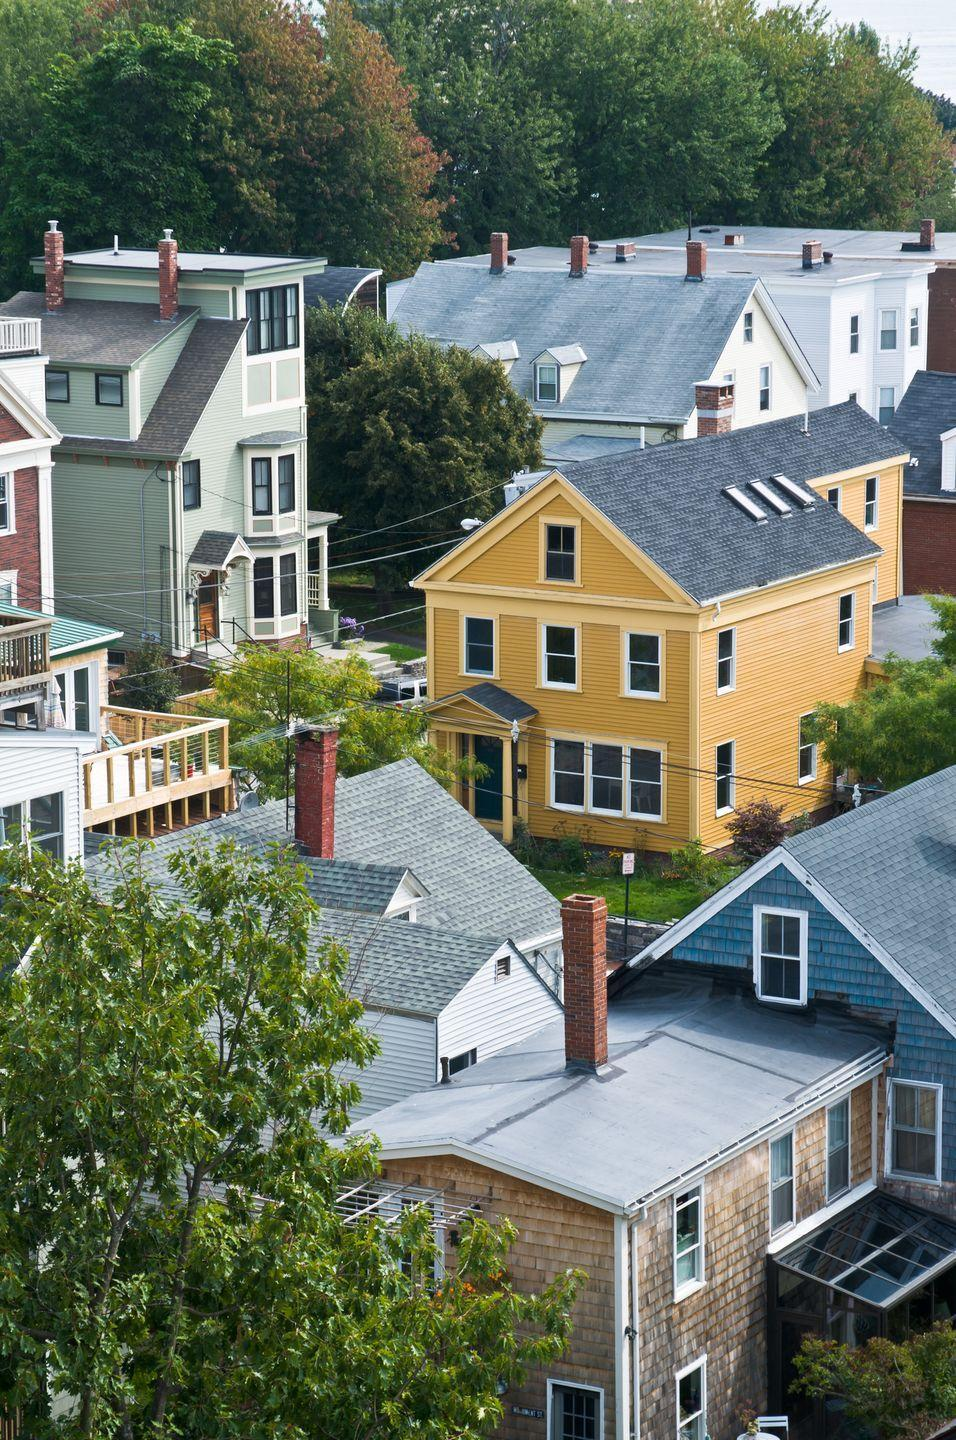 """<p>Think of a city in Maine and you'll probably automatically think of Portland, the state's most populous city. Here, it's easy to find a place where you can get away from it all, since <a href=""""https://artsandculture.google.com/entity/portland/m0c4kv?hl=en"""" rel=""""nofollow noopener"""" target=""""_blank"""" data-ylk=""""slk:more than one-third of Maine's total population"""" class=""""link rapid-noclick-resp"""">more than one-third of Maine's total population</a> lives in the Greater Portland area (which also makes it the most populous metropolitan area in northern New England!).</p>"""